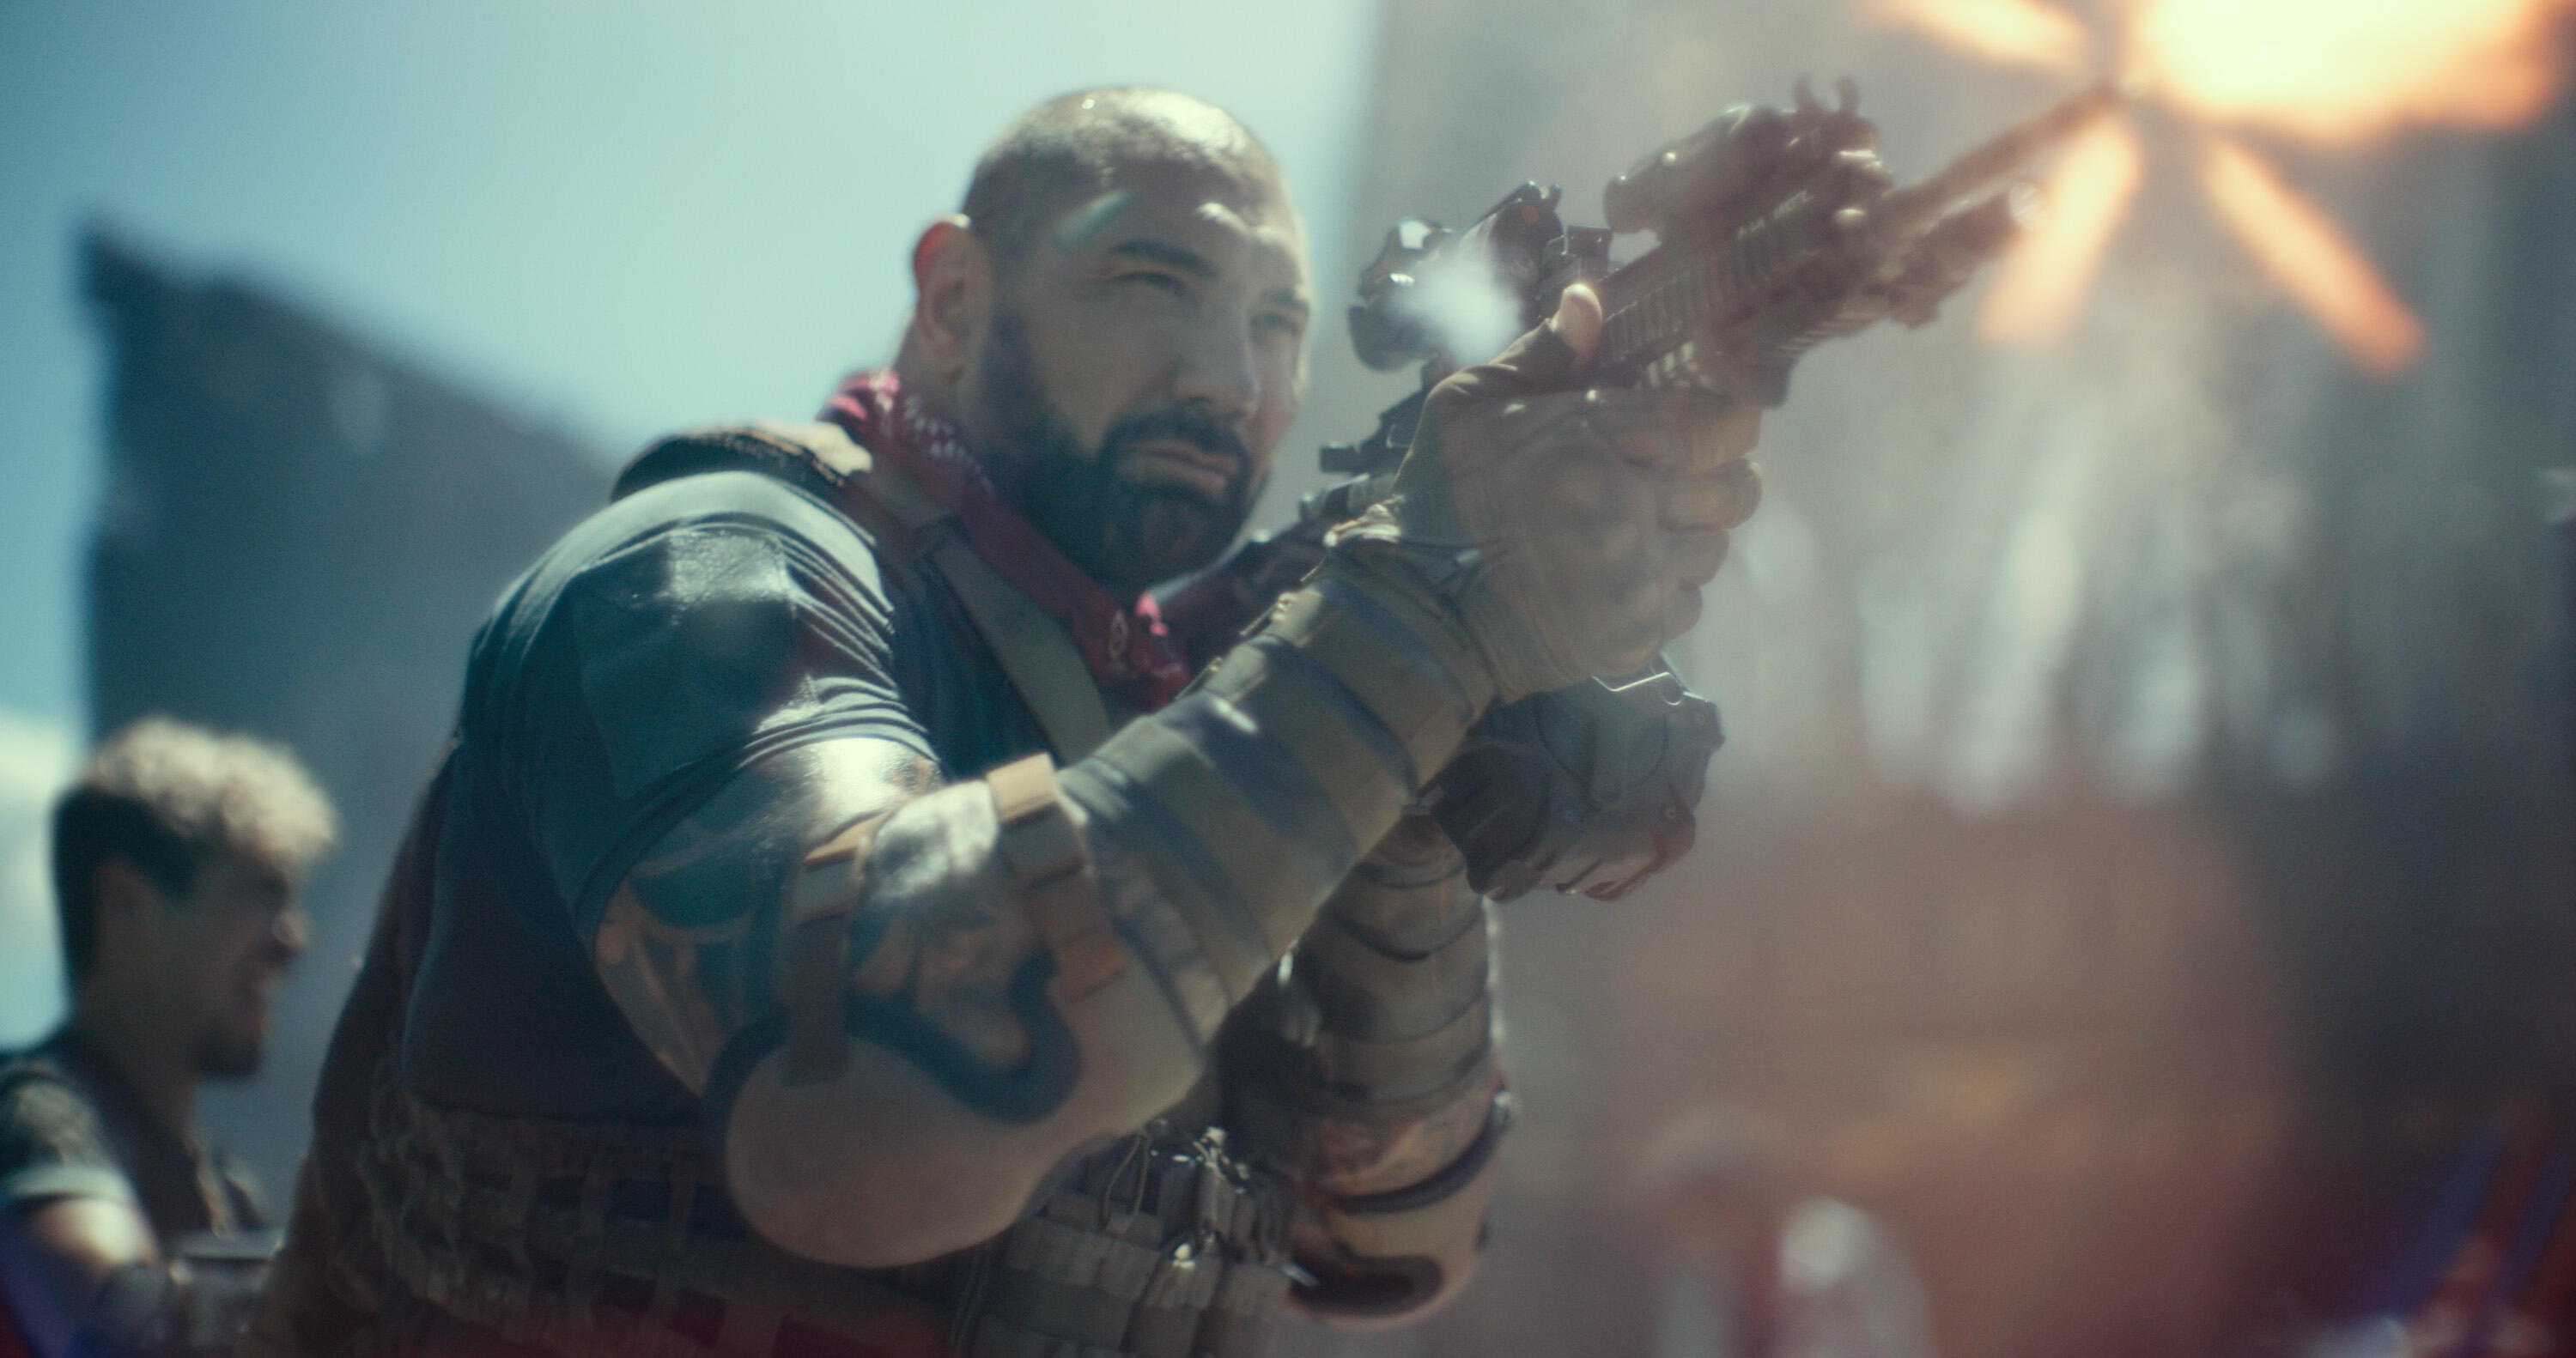 Army of the Dead review: Zack Snyder bets on brainless zombie flick - CNET